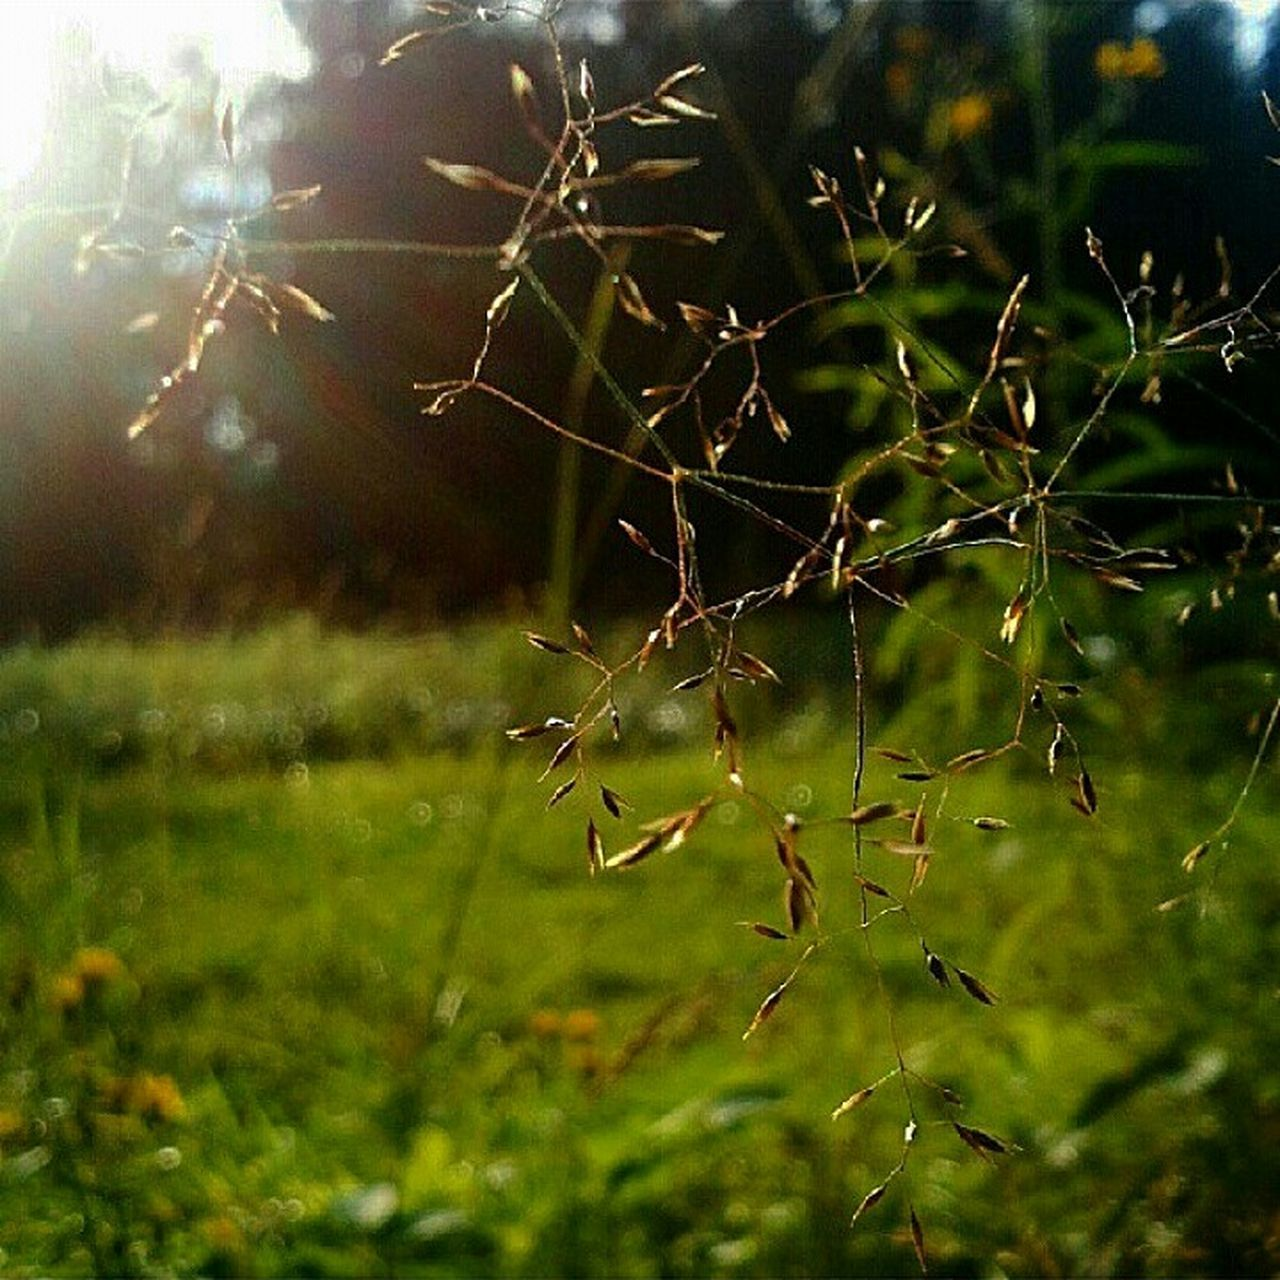 growth, nature, plant, no people, outdoors, green color, day, beauty in nature, close-up, animal themes, grass, freshness